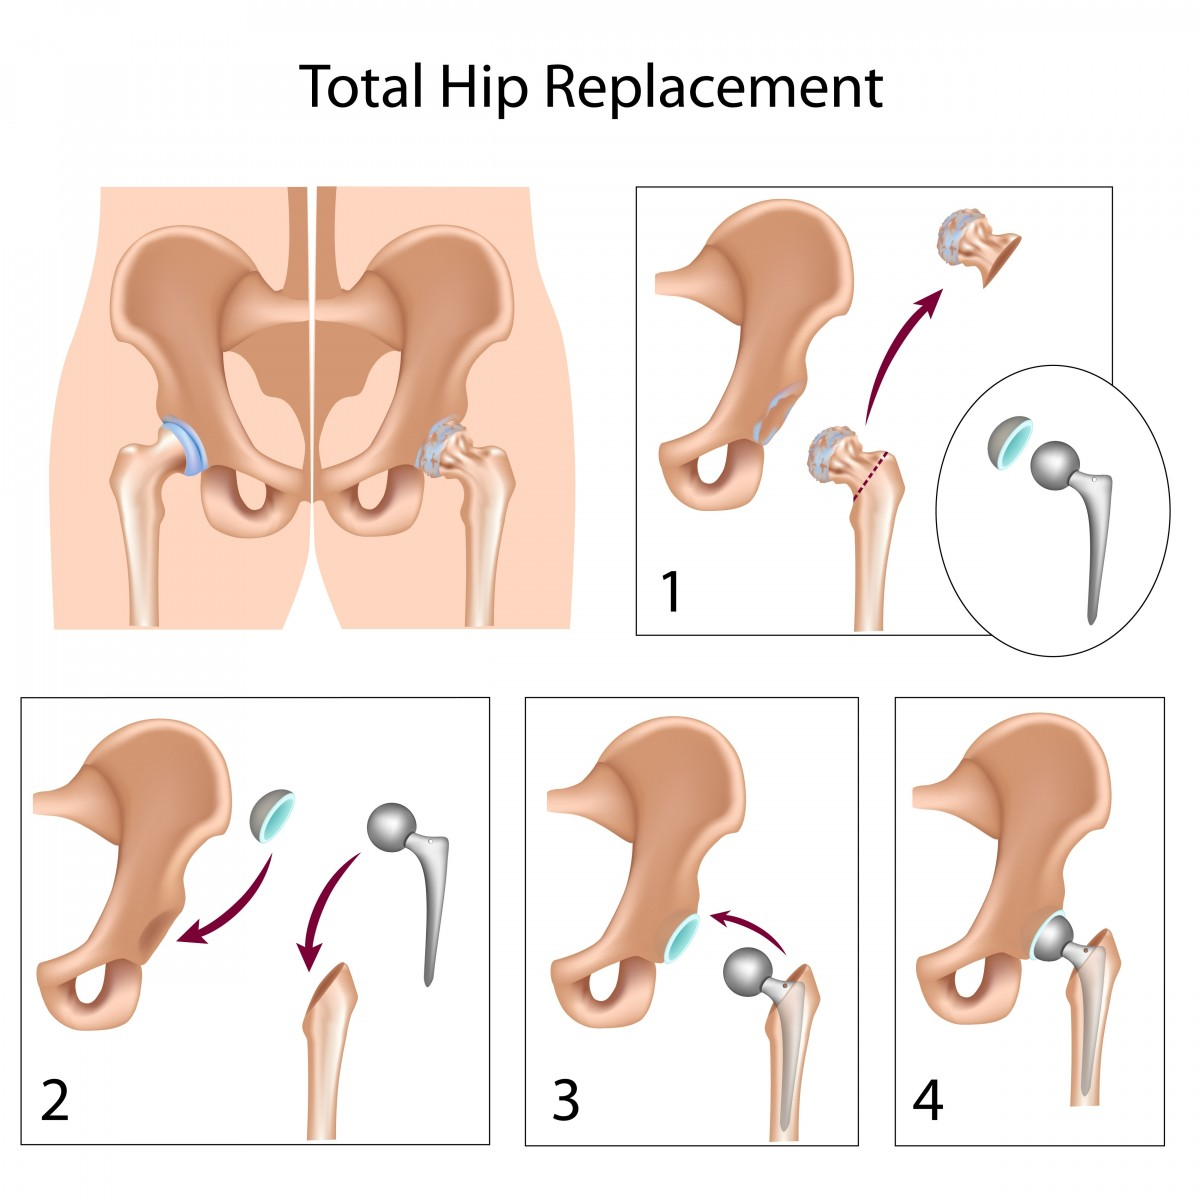 Total Hip Replacement Surgery In Cerebral Palsy Patients Improves